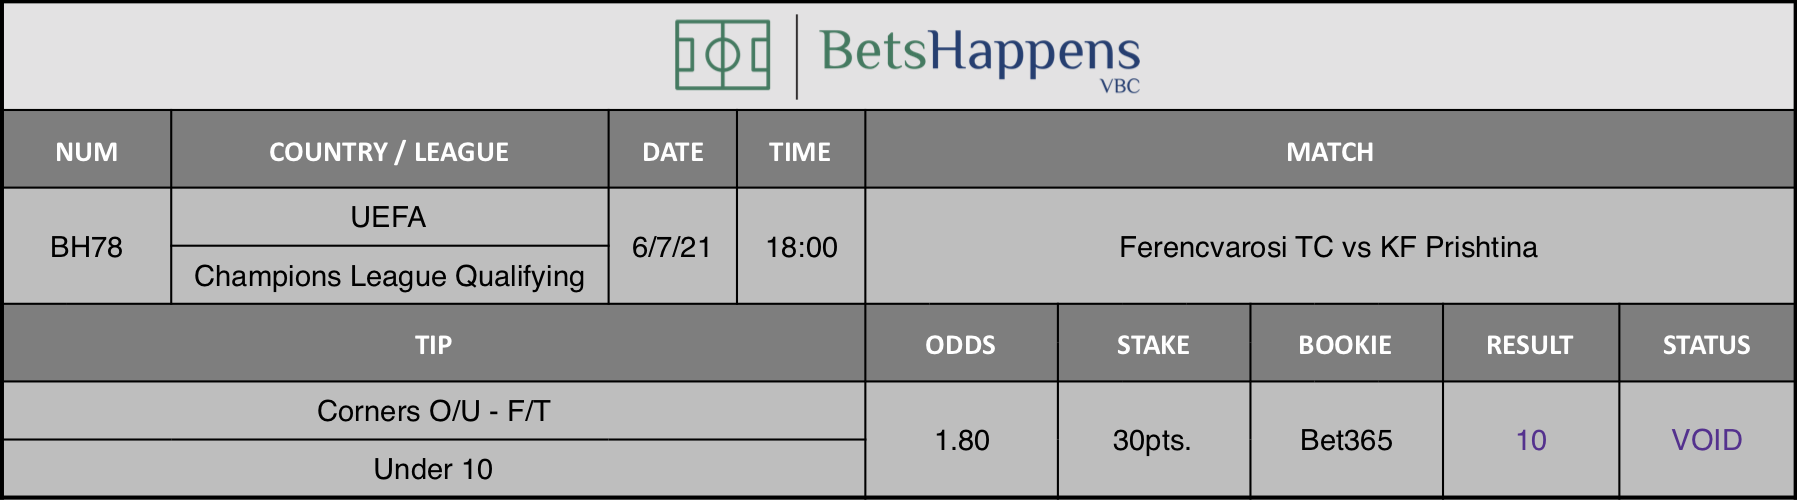 Results of our tip for the Ferencvarosi TC vs KF Prishtina match. Corners O/U F/T Under 10 is recommended.